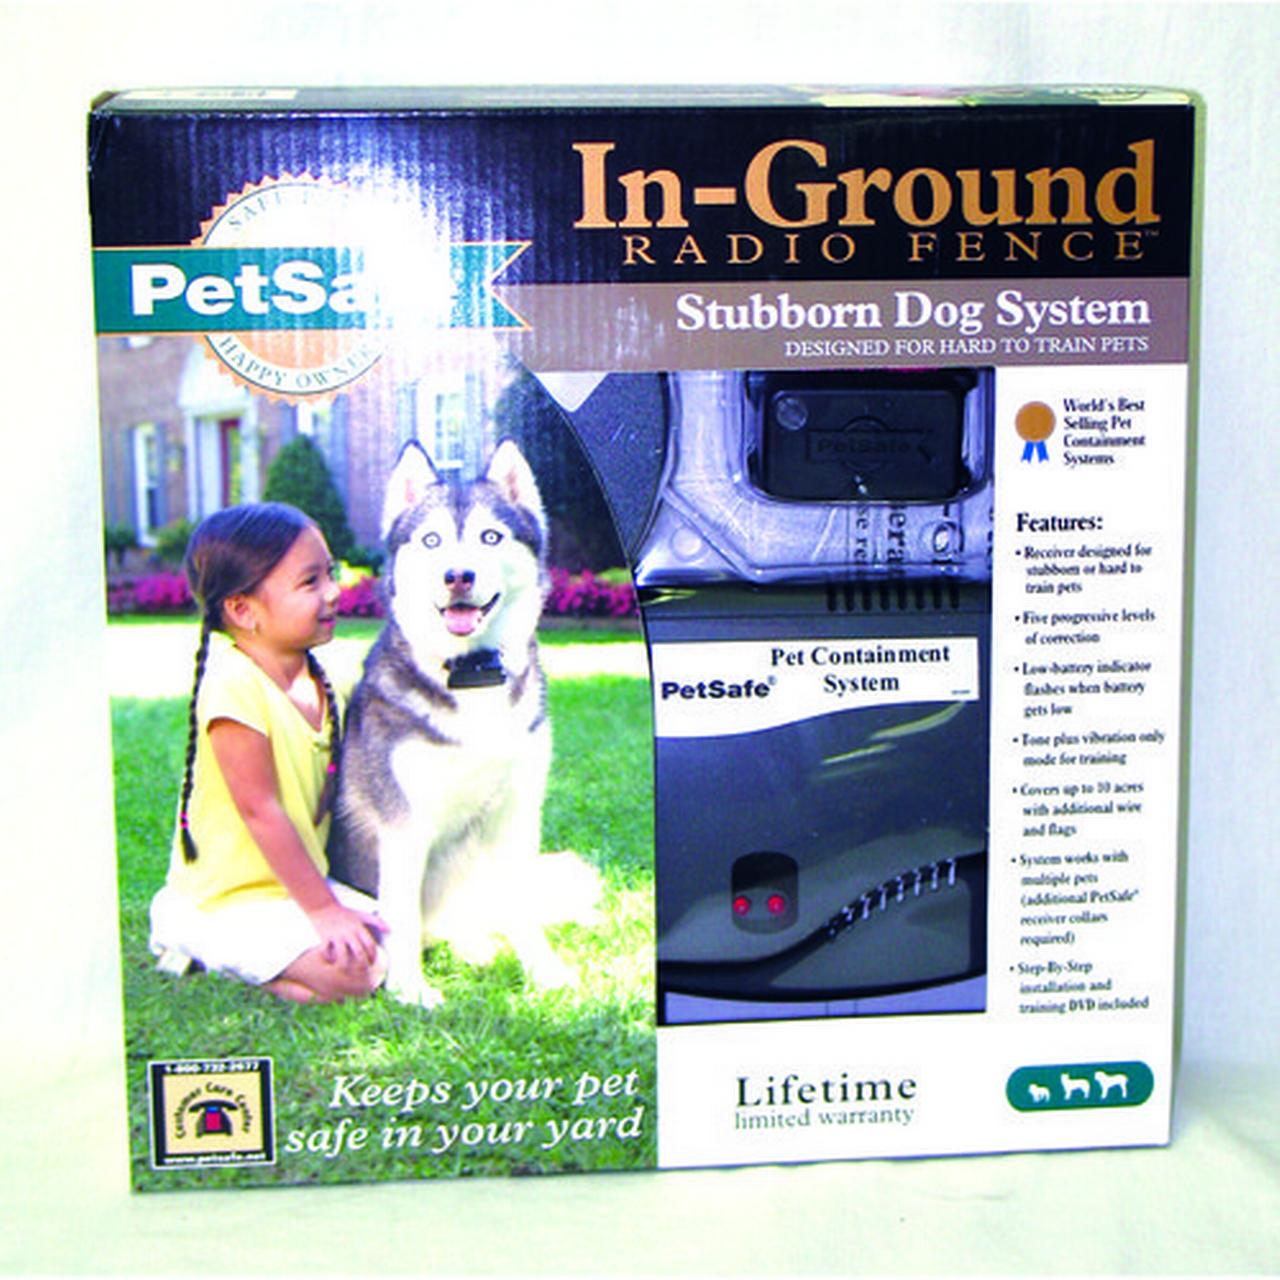 Petsafe Stubborn Dog Inground Radio Fence